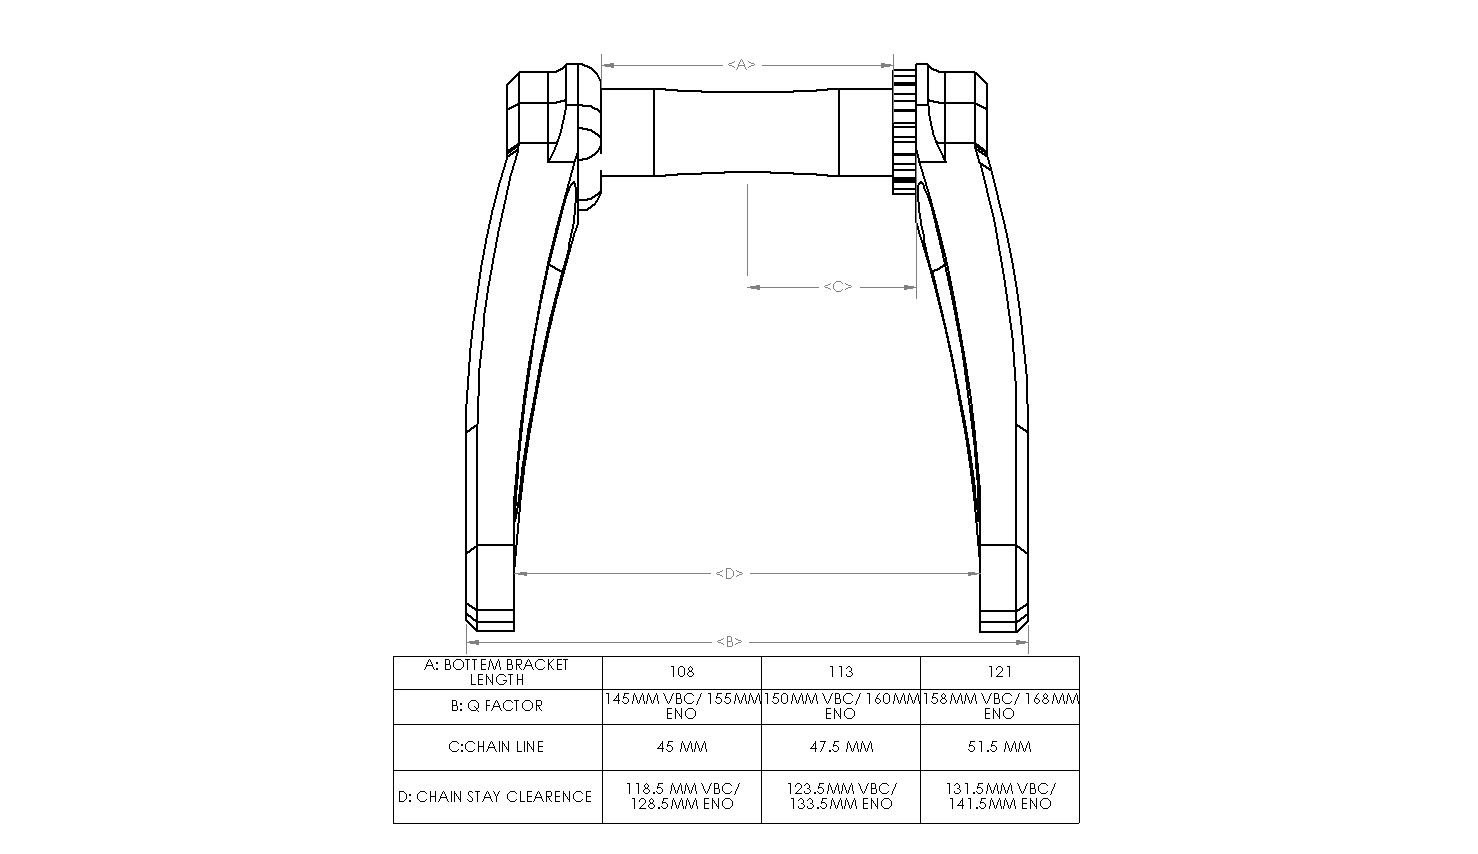 Square Taper Chain Stay Clearance Guide